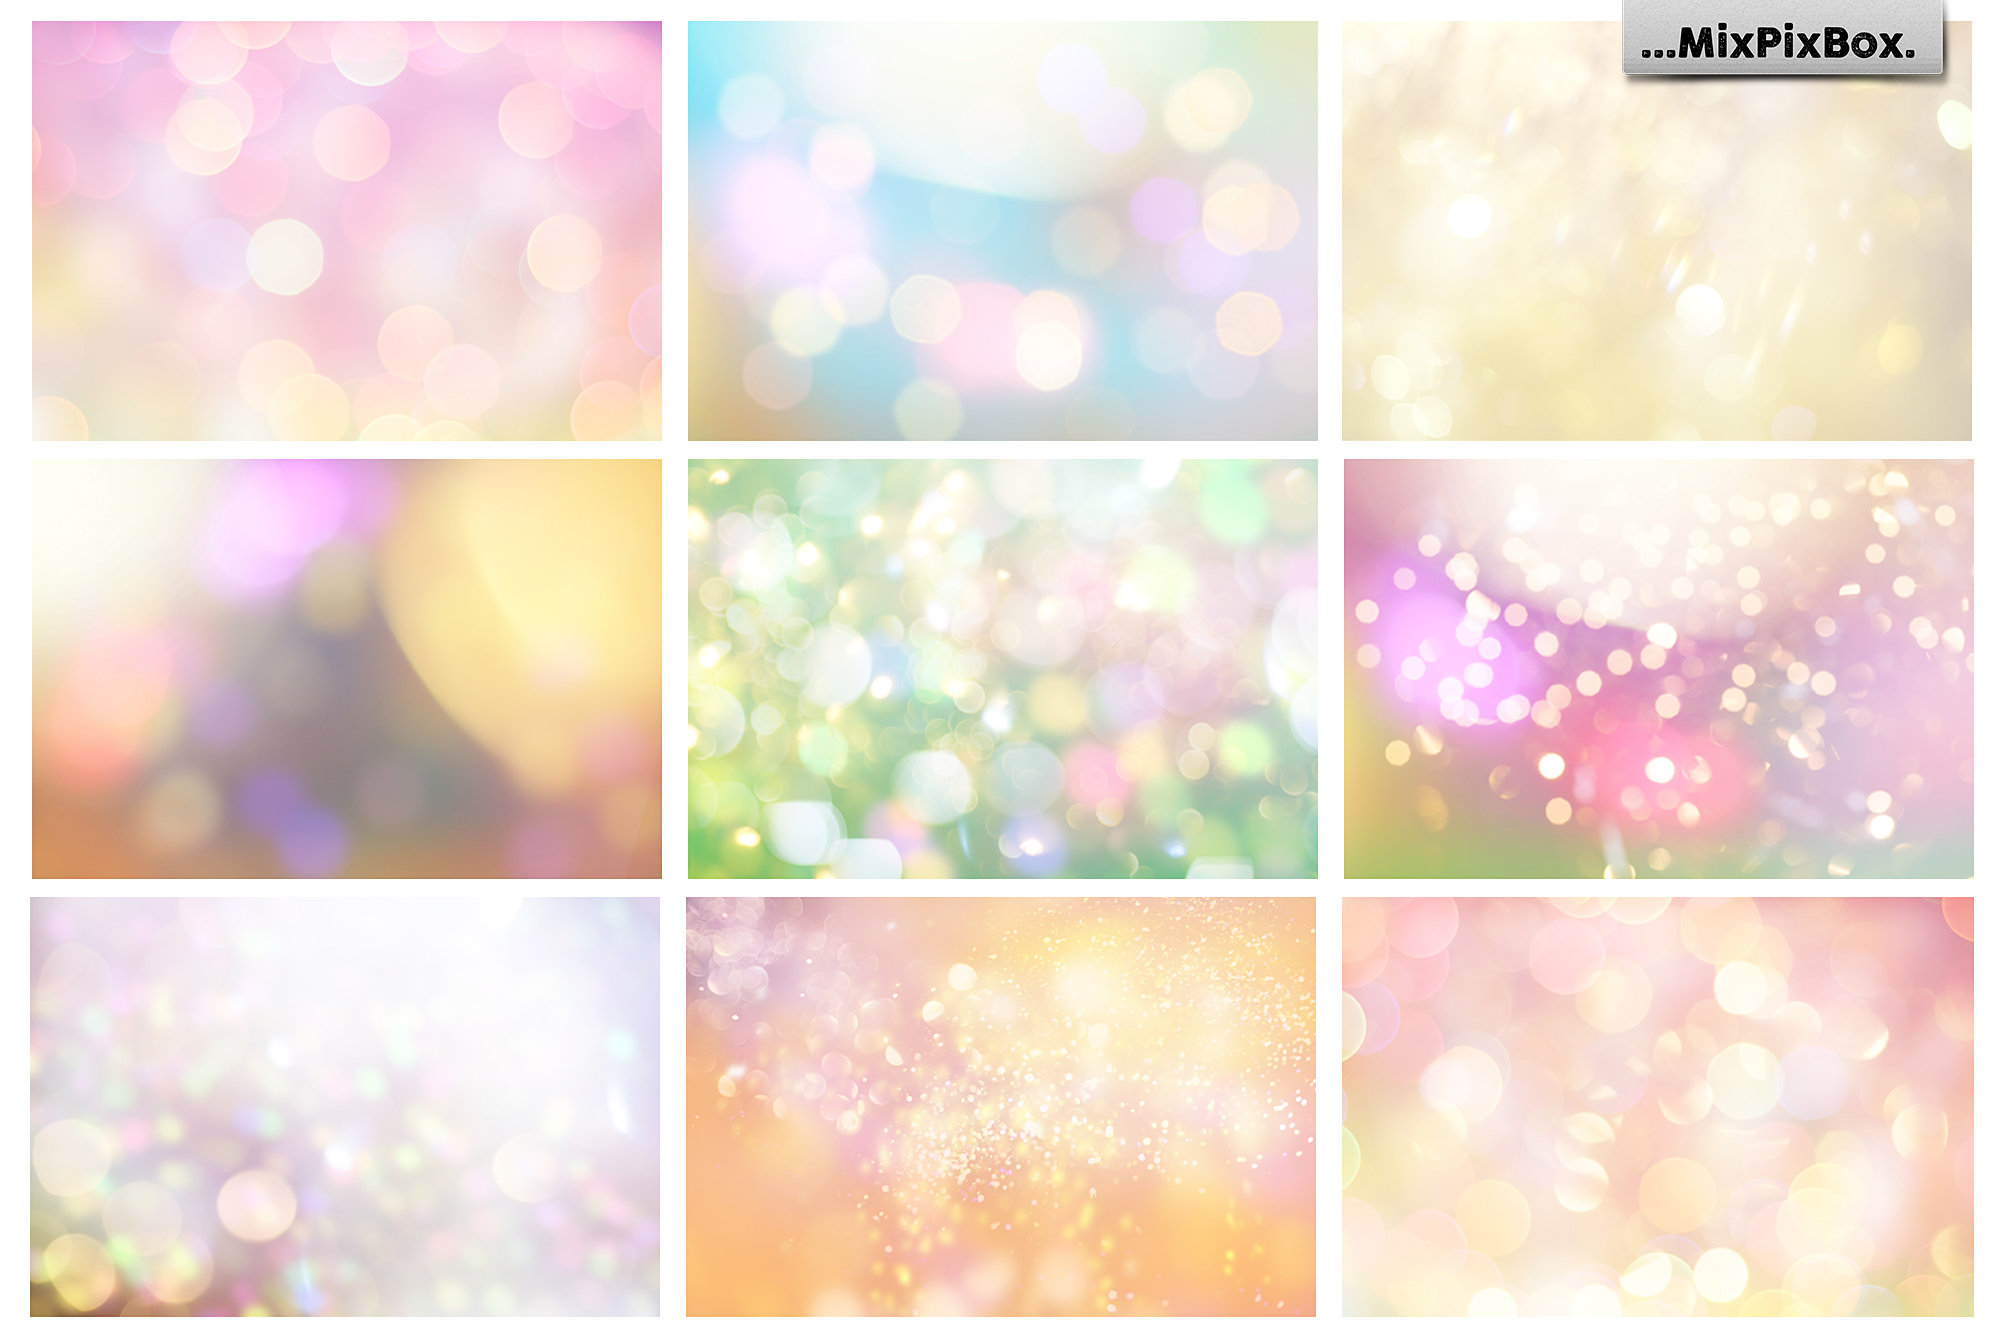 mixpixbox bokeh overlays and digital backdrops